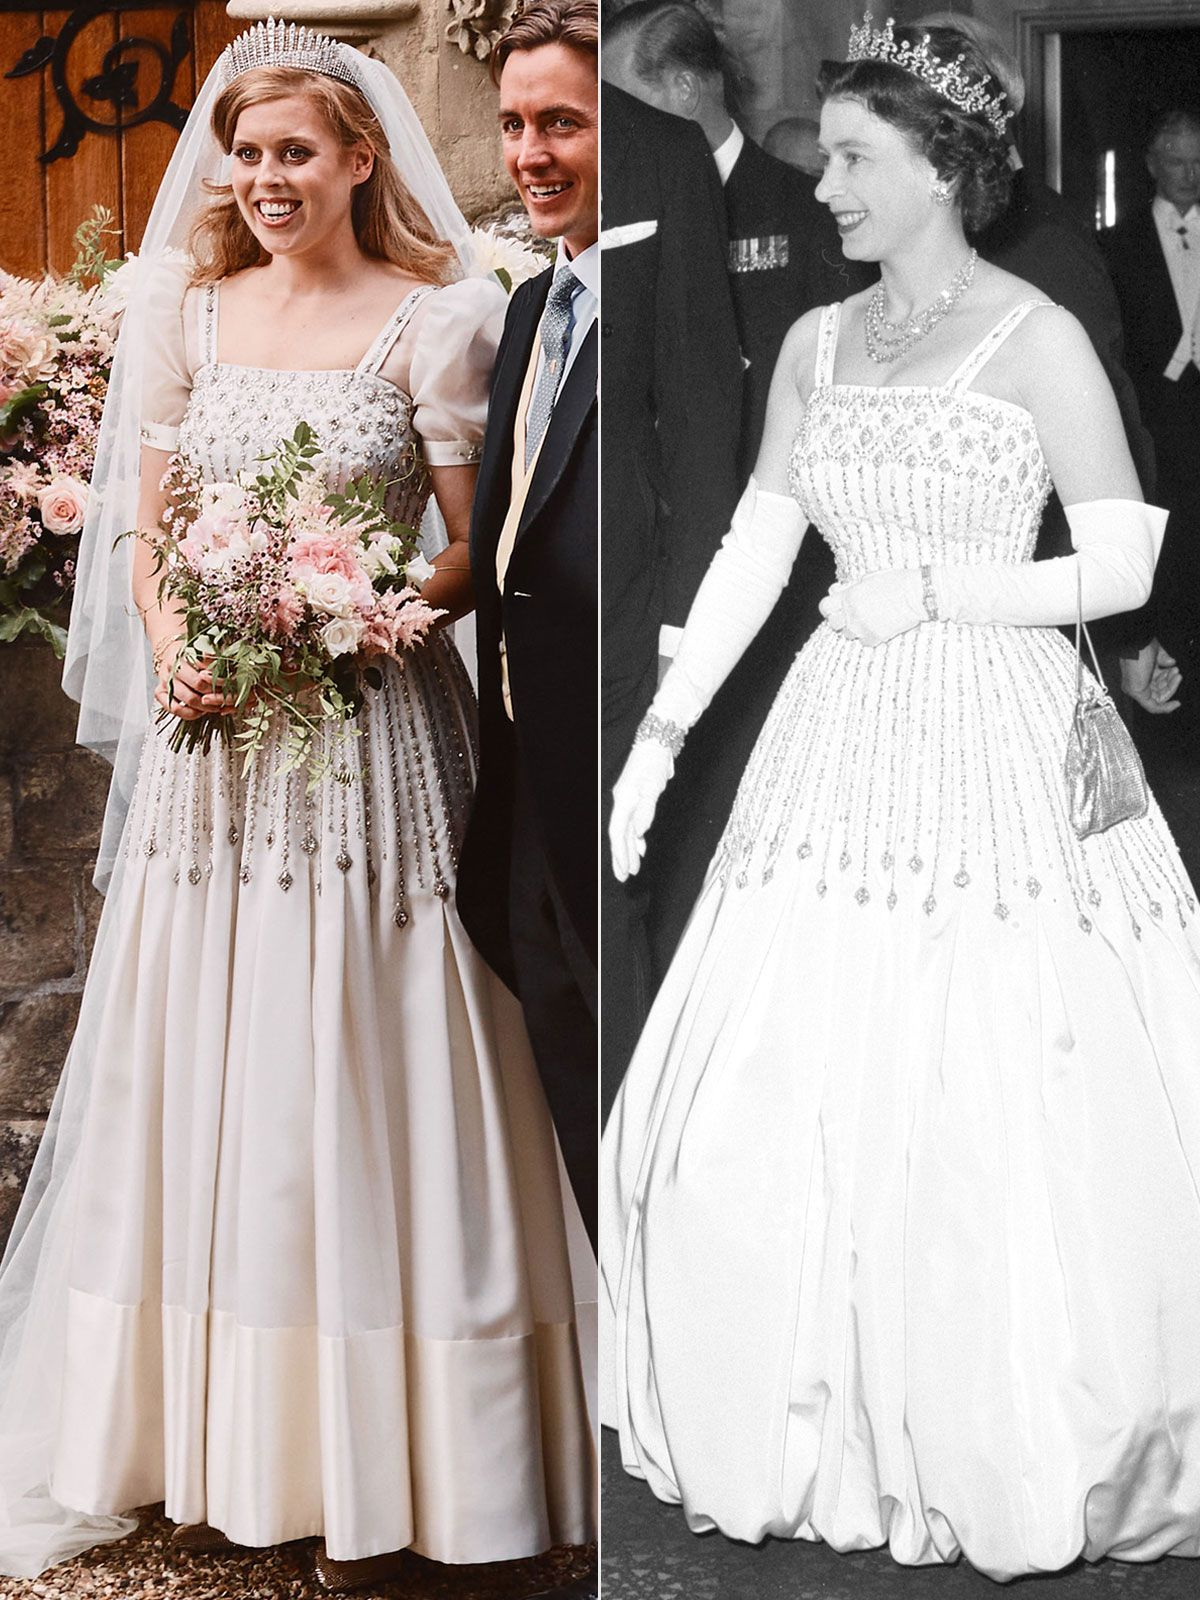 Princess Beatrice Holds Hands With Husband In Romantic New Wedding Portraits See The Photos In 2020 Princess Beatrice Wedding Royal Wedding Gowns Royal Wedding Dress